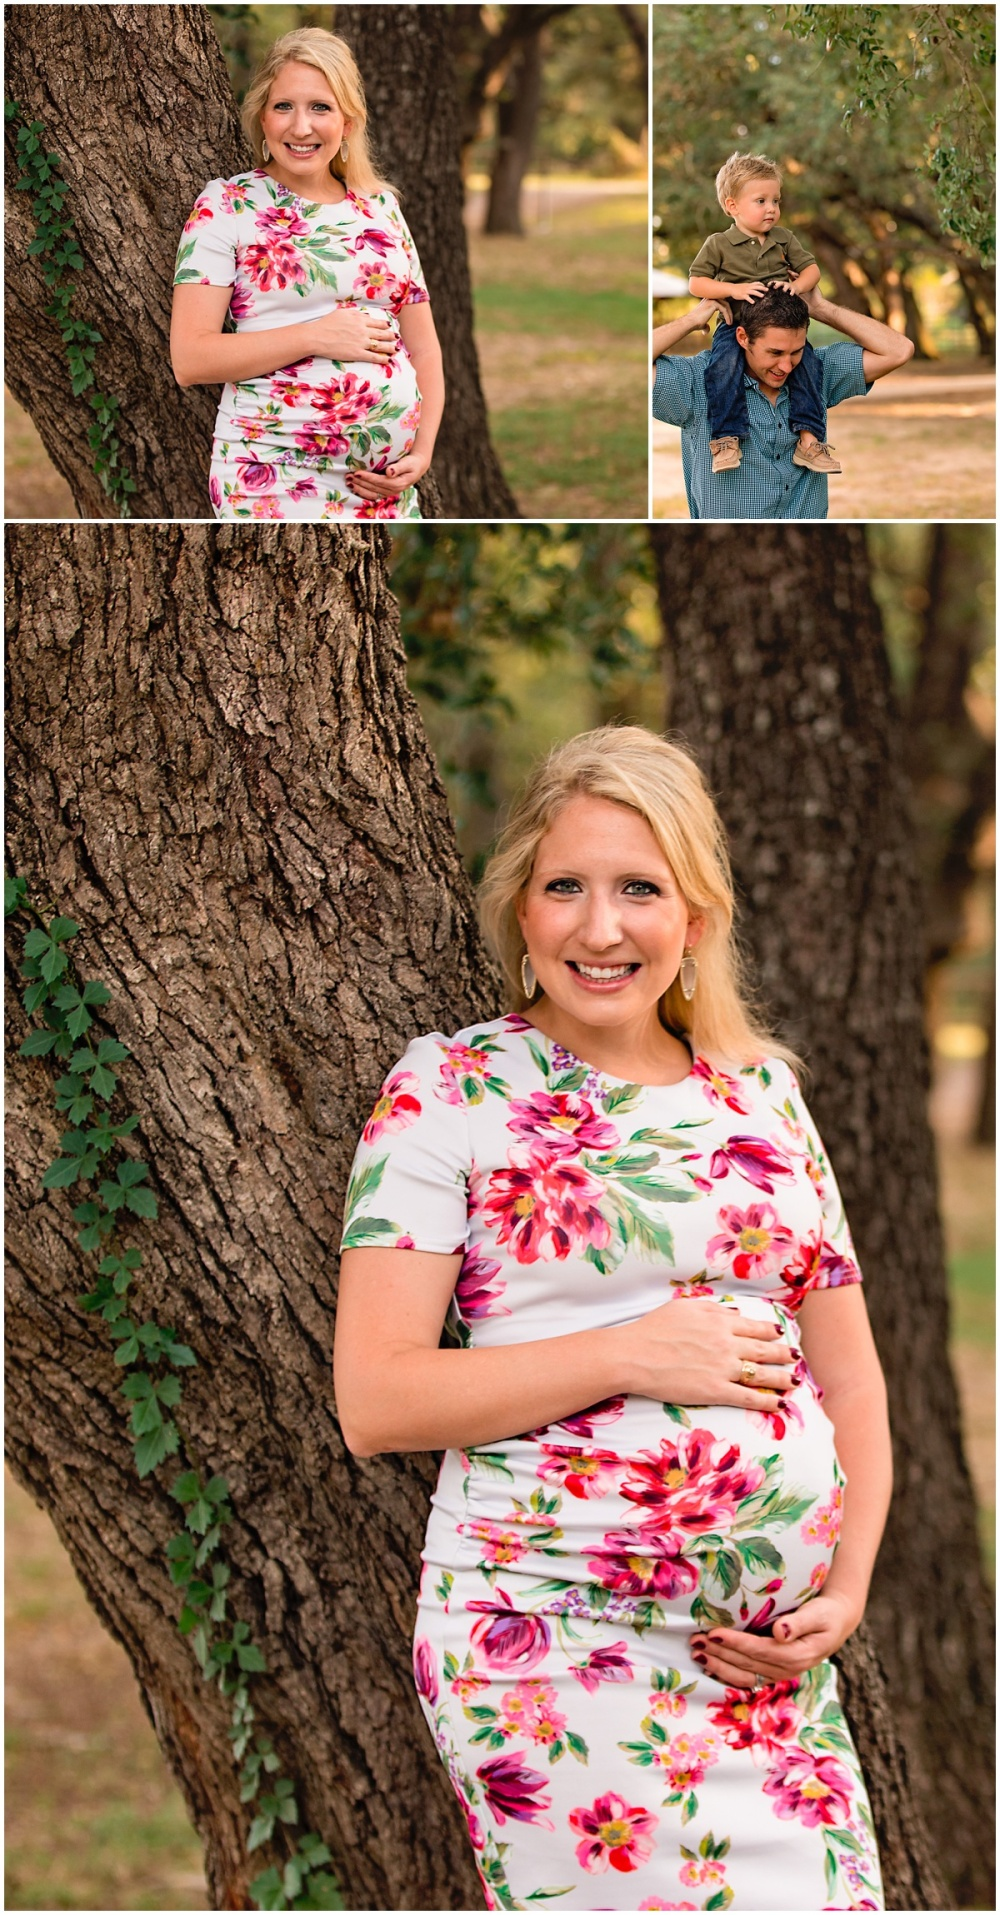 Family-Children-Maternity-Portraits-San-Antonio-Hill-Country-Texas-Carly-Barton-Photography_0005.jpg